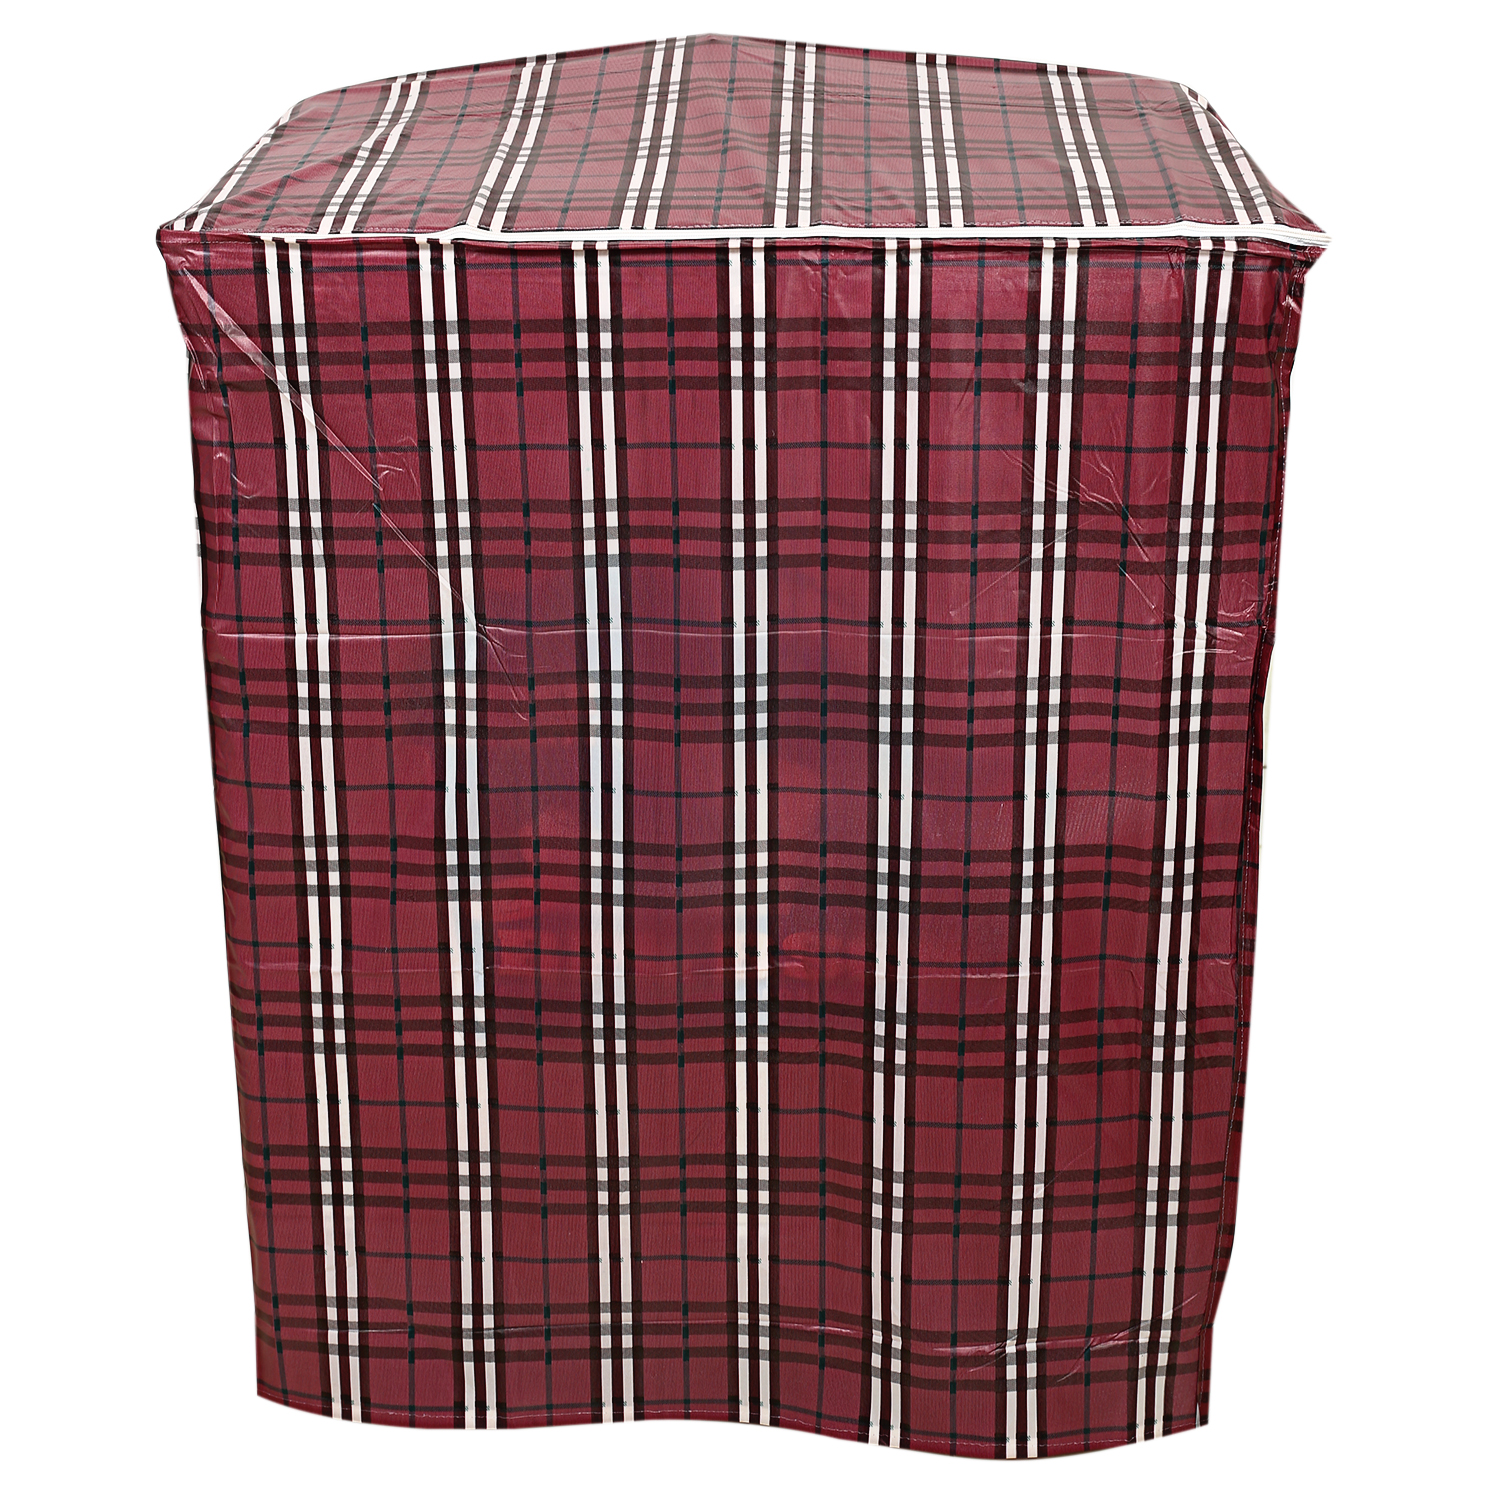 Kuber Industries PVC Top Load Semi Automatic Washing Machine Cover (Maroon)-CTKTC3874